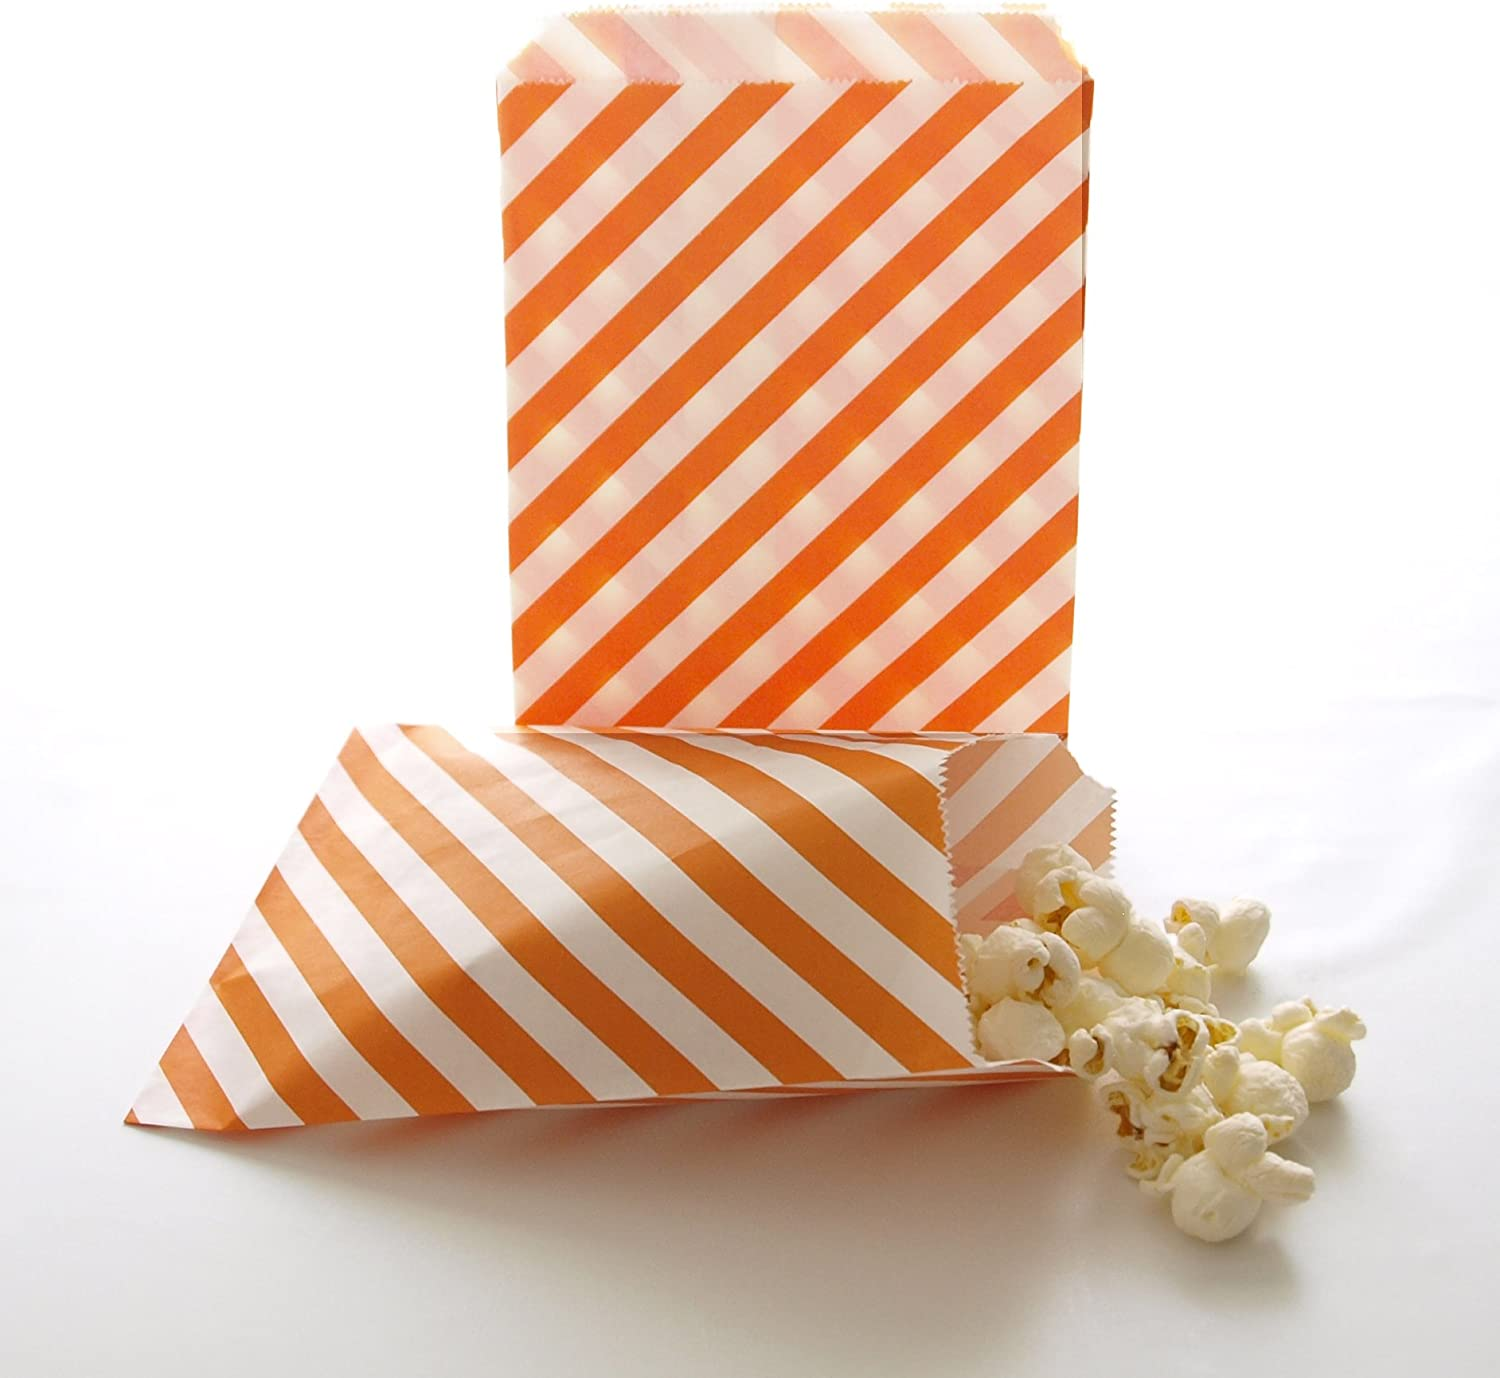 Paper Bags Wedding Candy Buffet Paper Candy Bags 50pcs,100pcs Striped wedding Bags Birthday Favor Bags Candy Treat Bag Party Bags